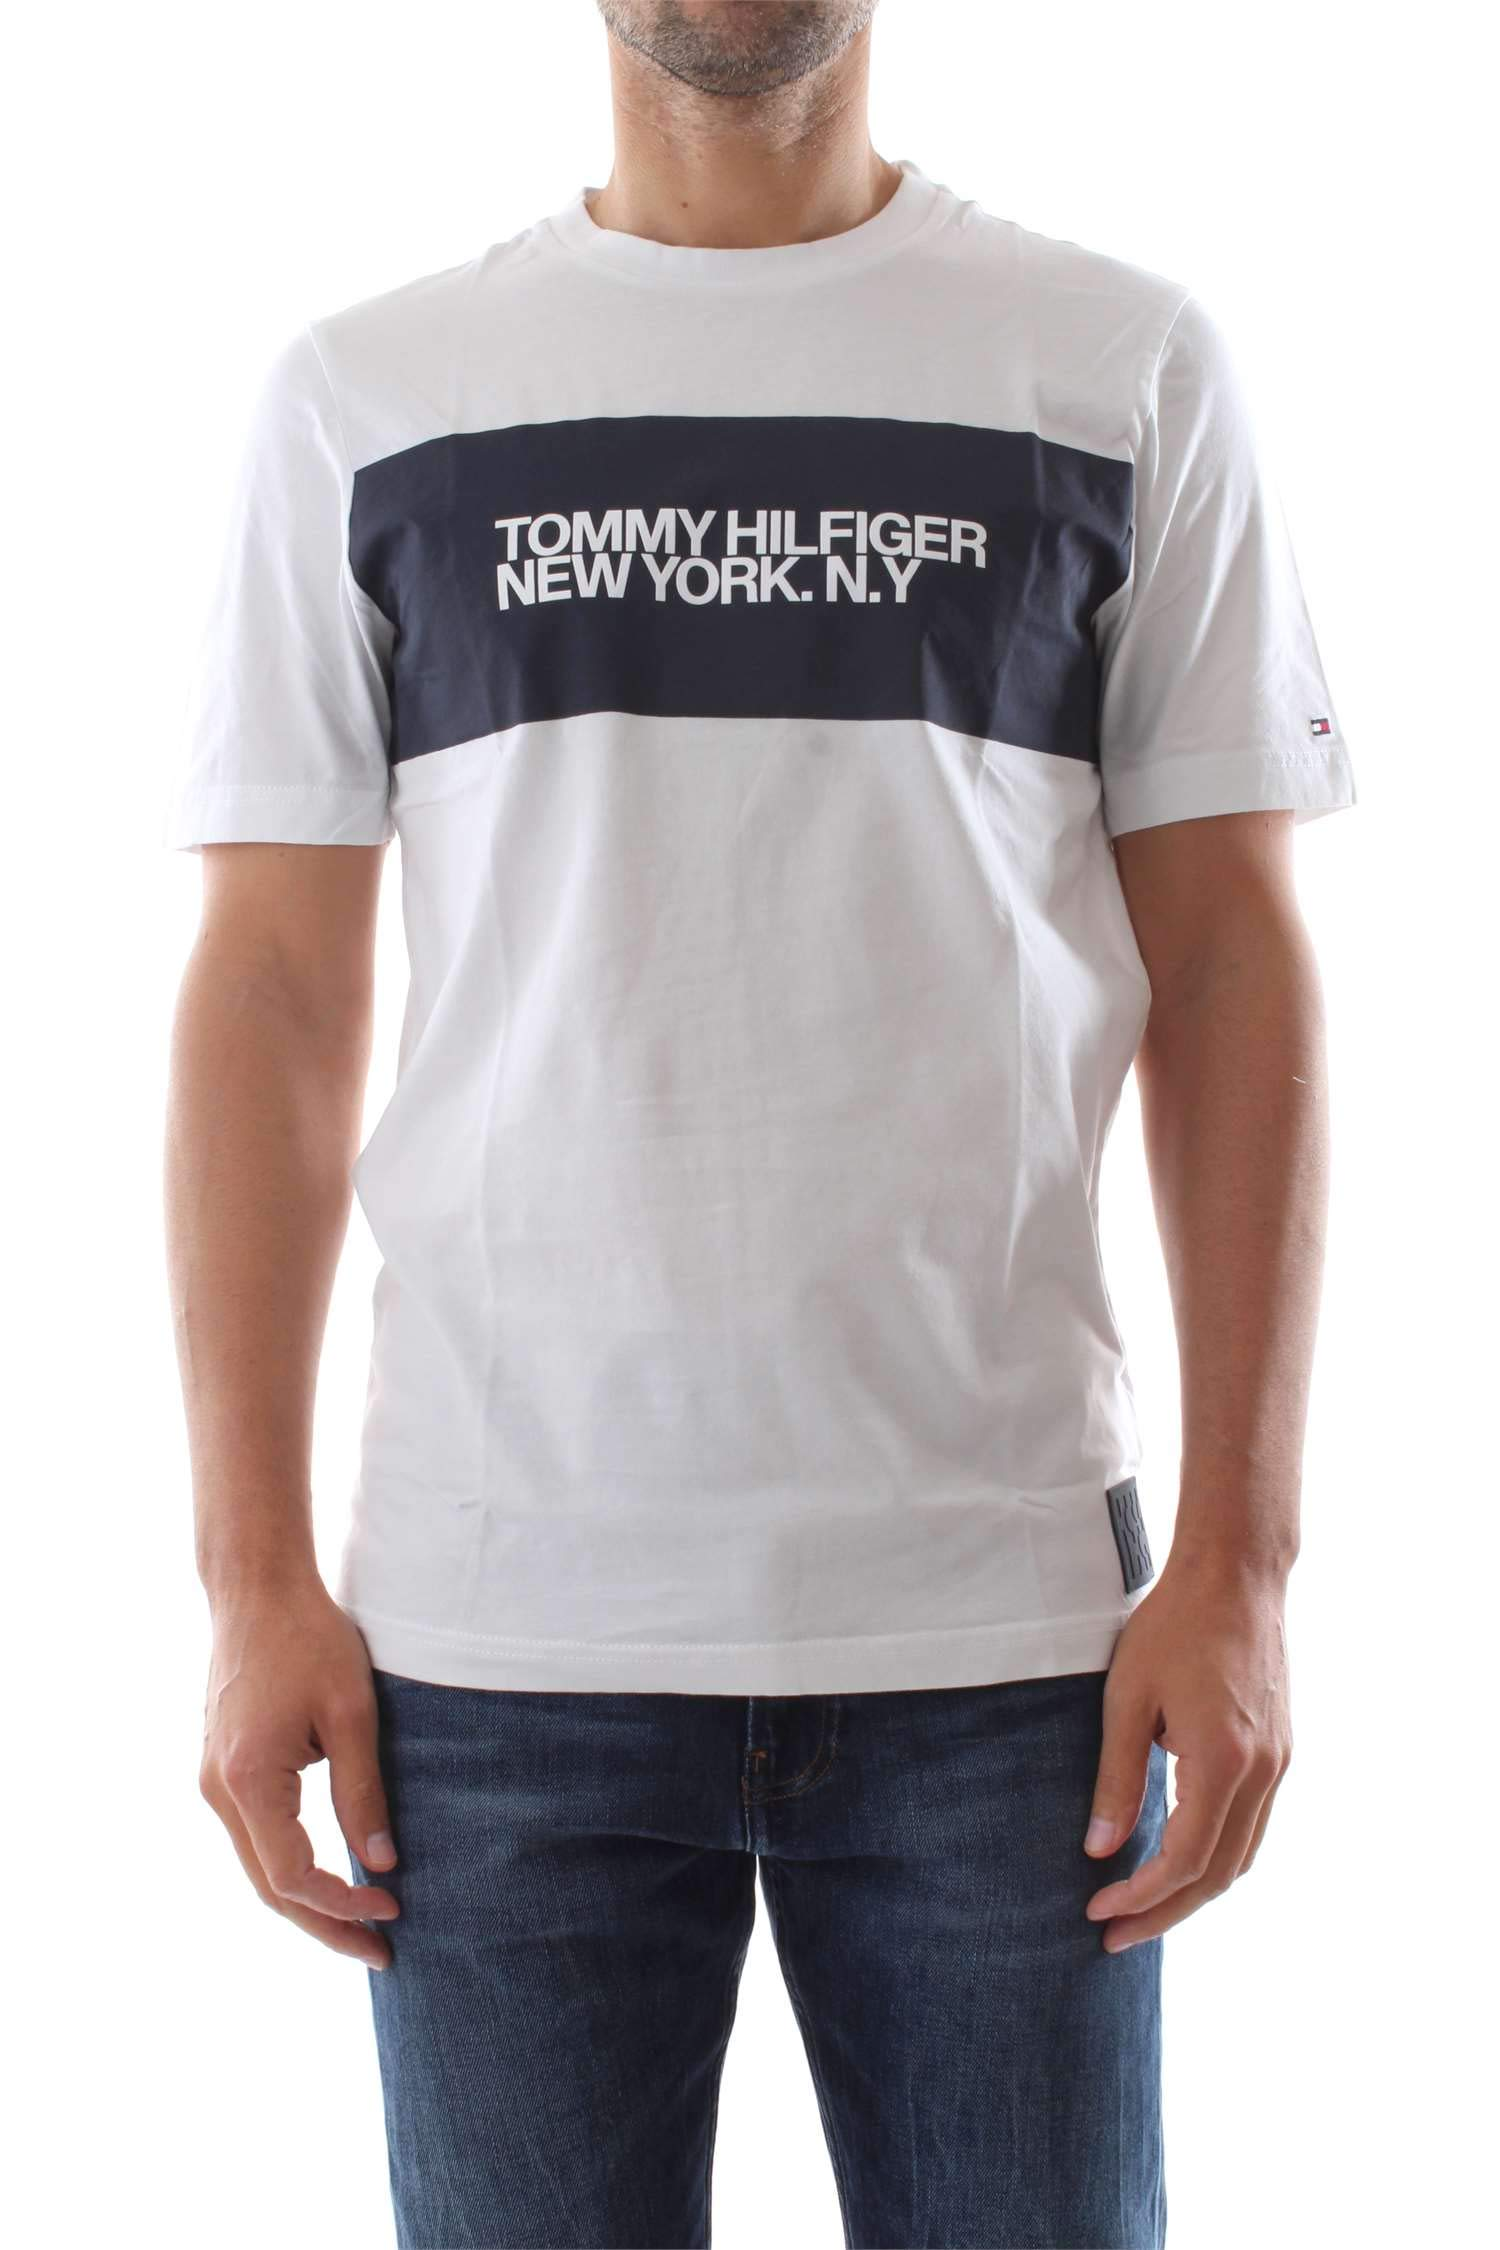 Tommy Hilfiger Big Scale Relaxed Fit tee Camiseta para Hombre